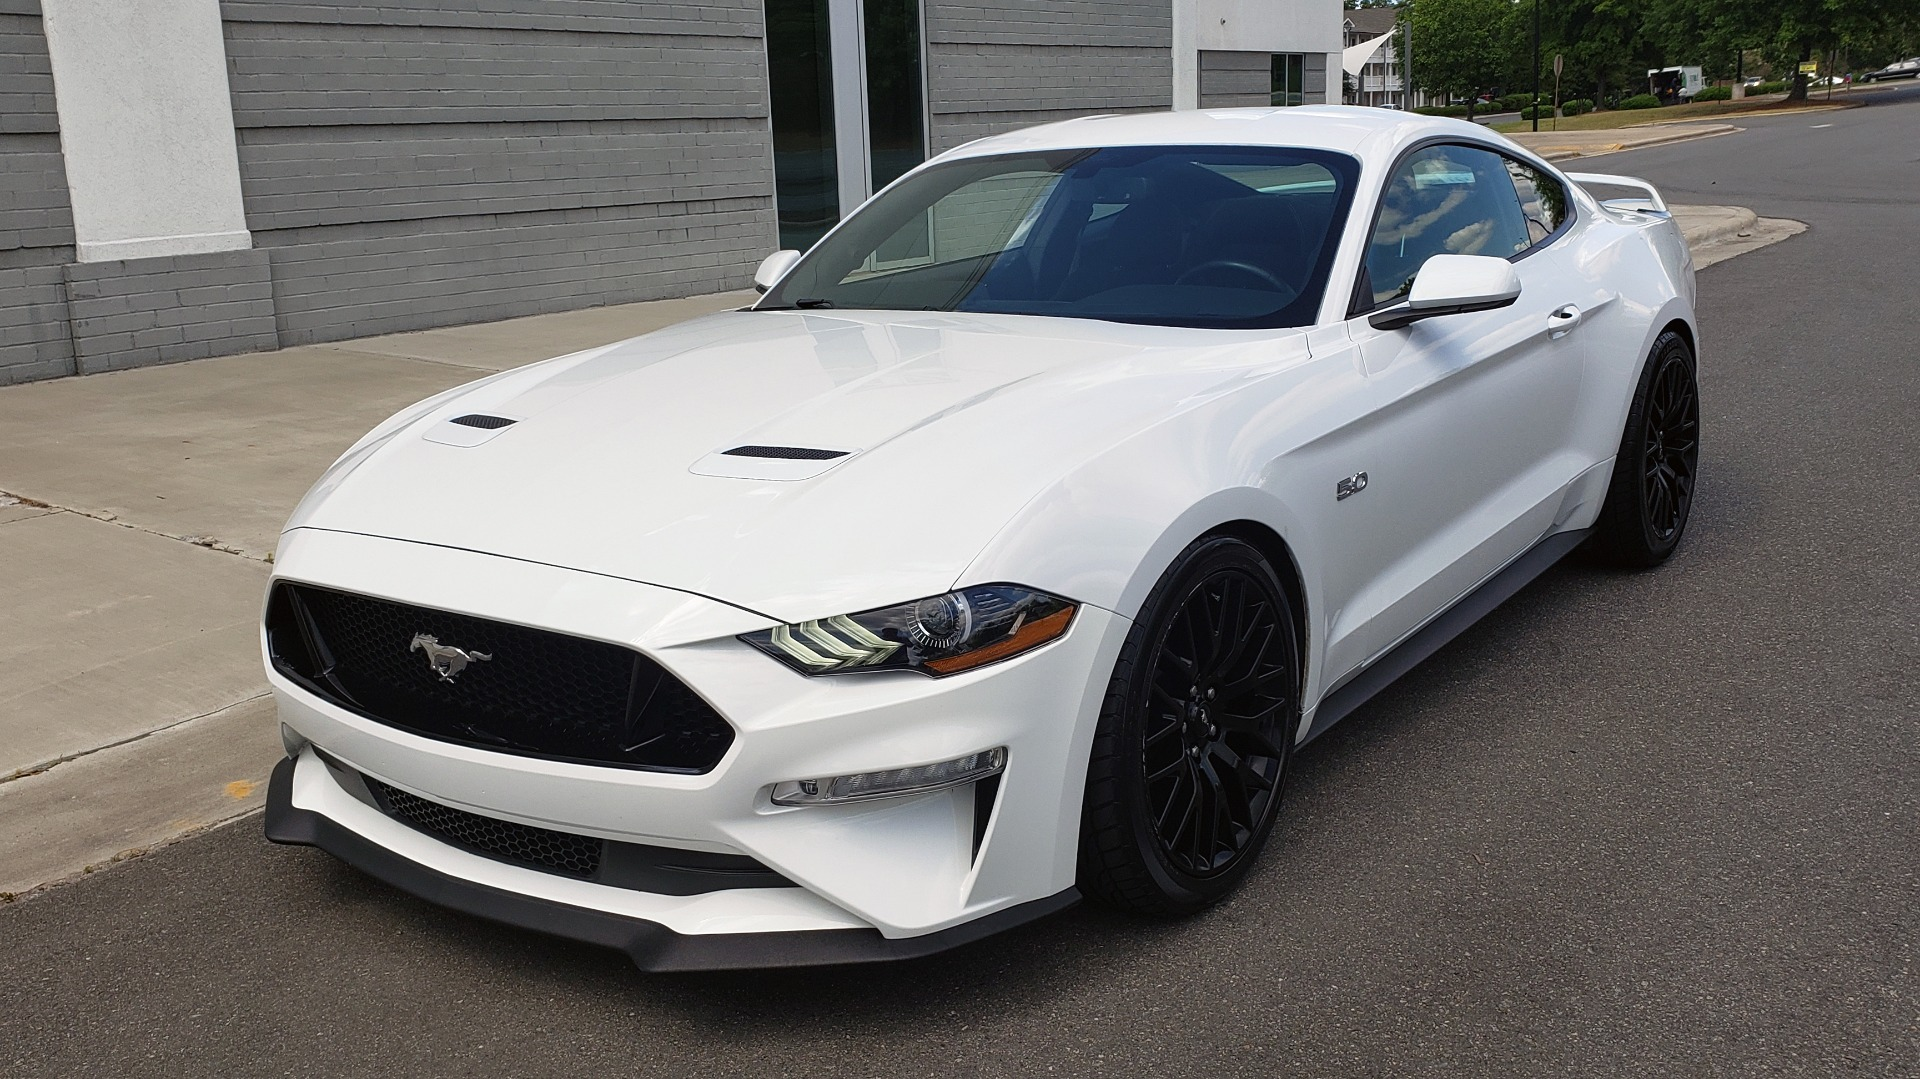 Used 2018 Ford MUSTANG GT COUPE / 5.0L V8 / AUTO / PERF PKG / REARVIEW / 19IN WHLS for sale Sold at Formula Imports in Charlotte NC 28227 4